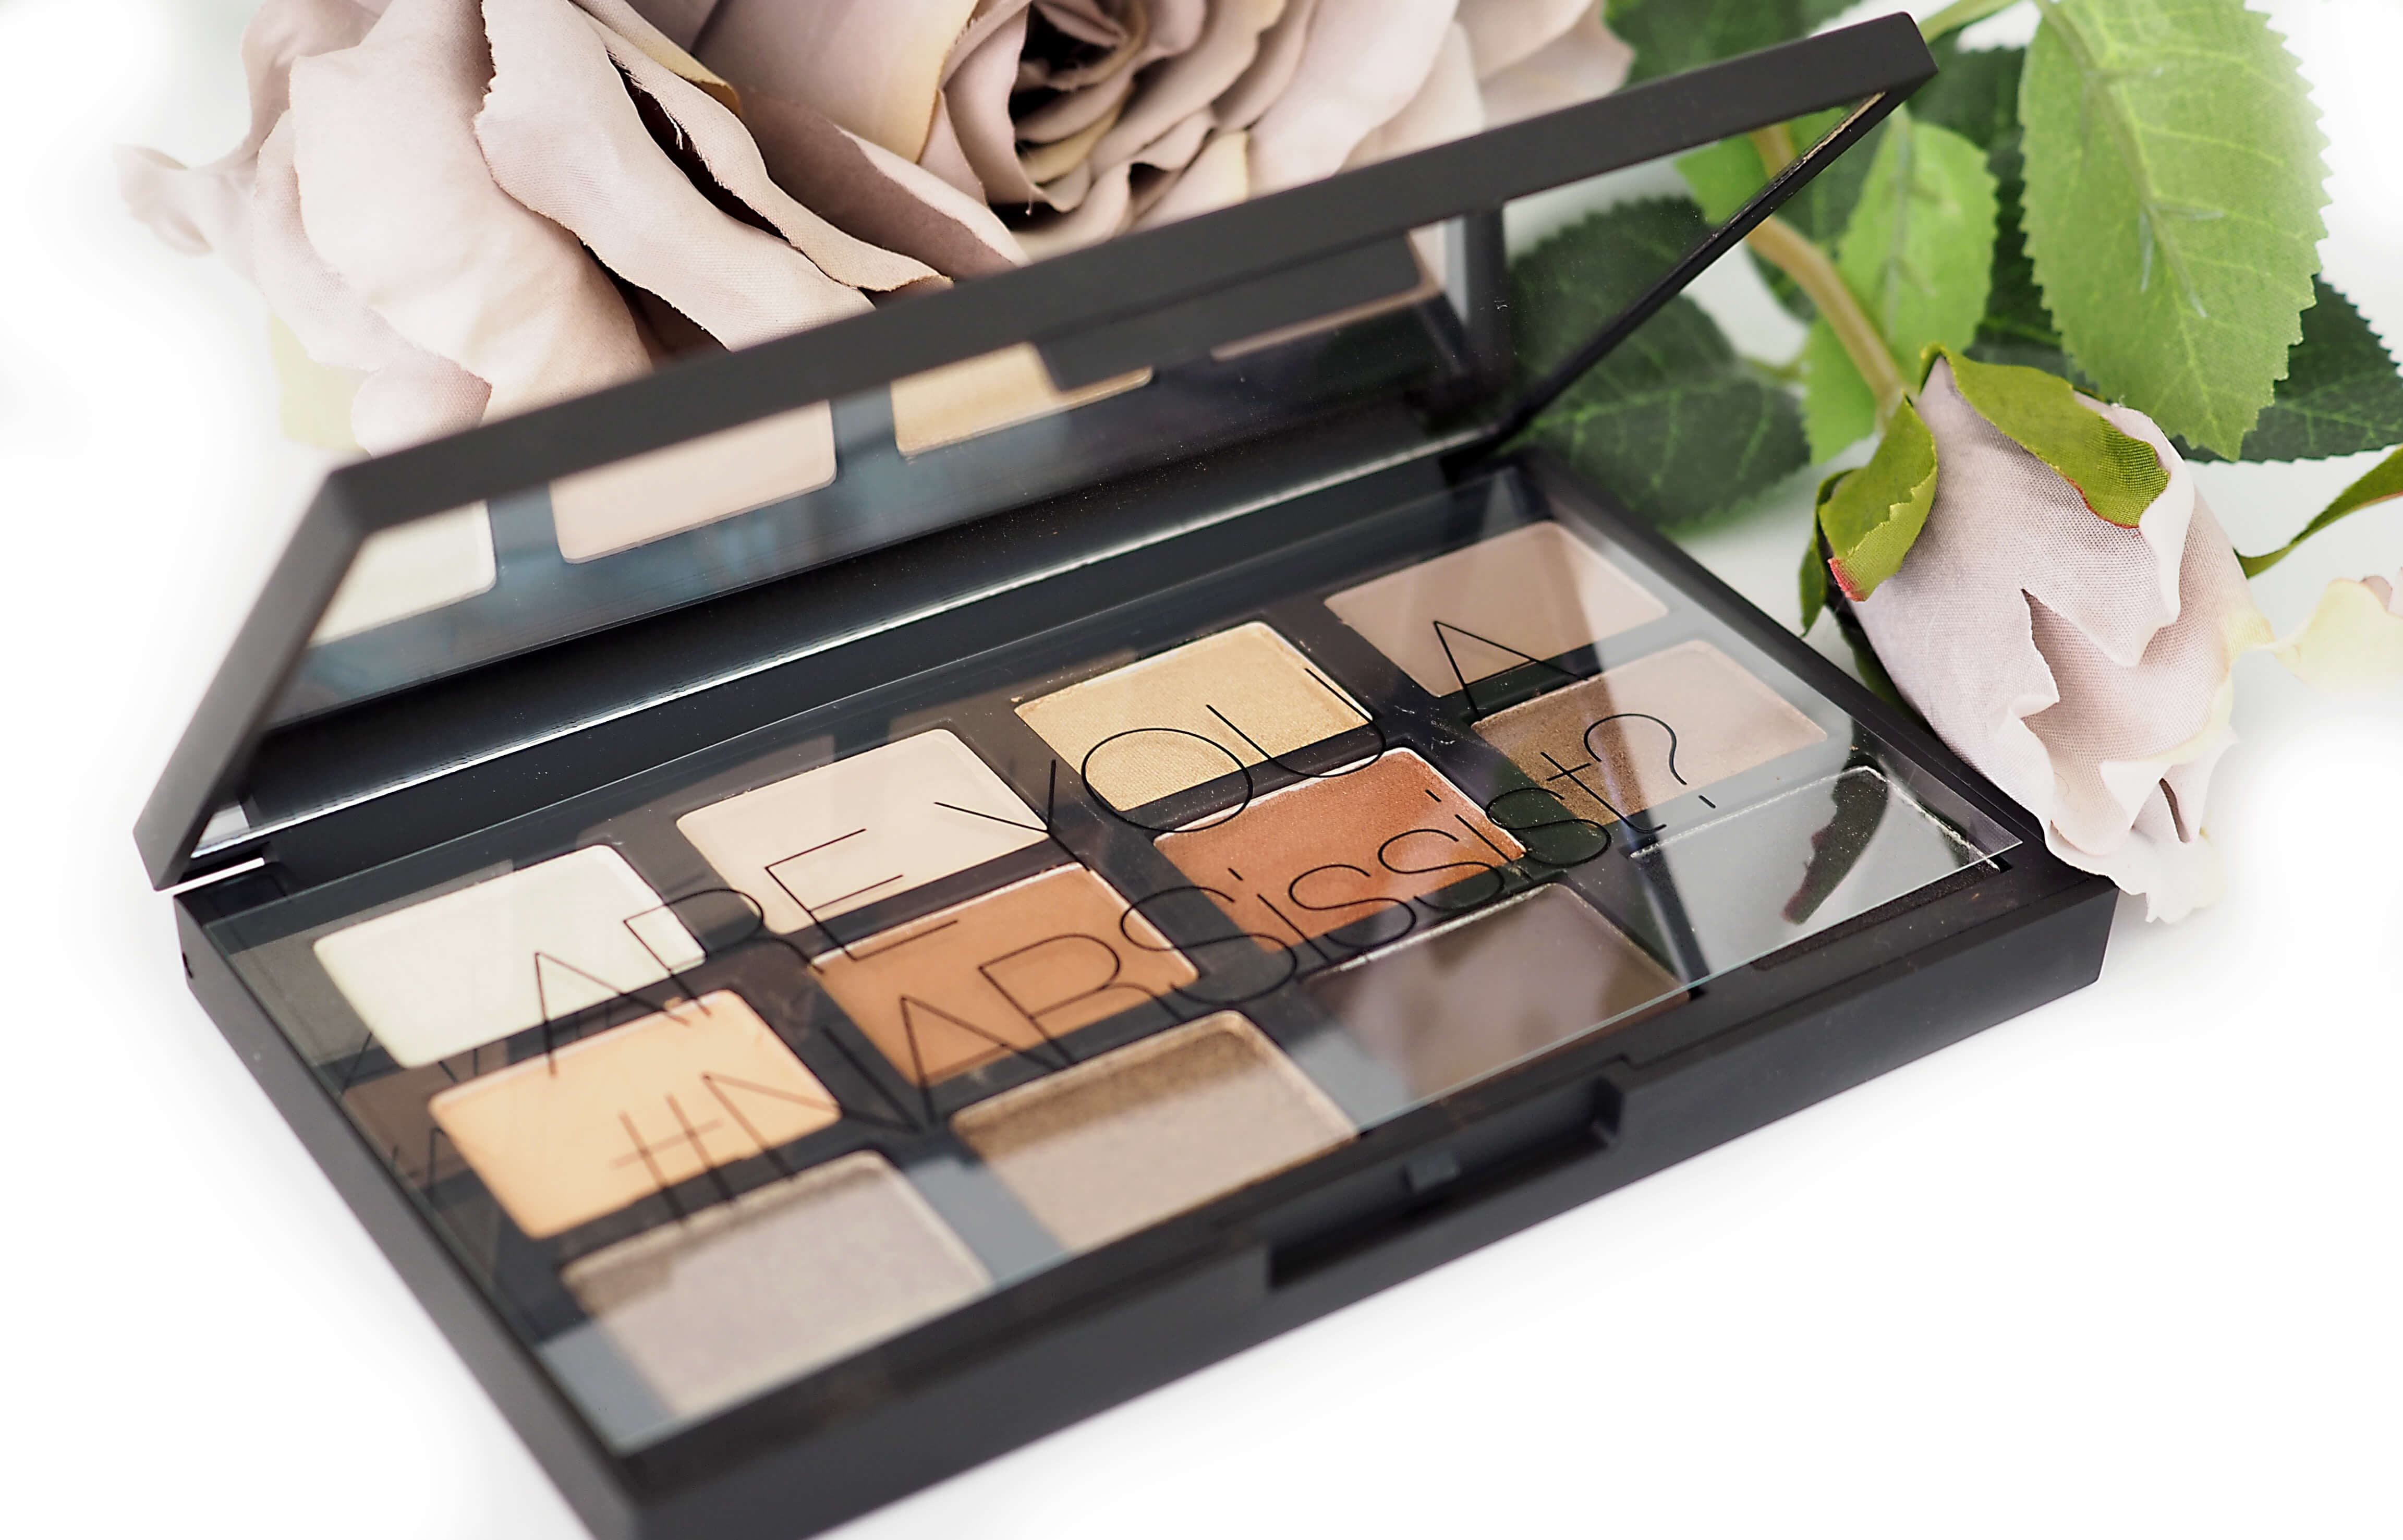 Recenzja NARSissist LOADED EYESHADOW PALETTE